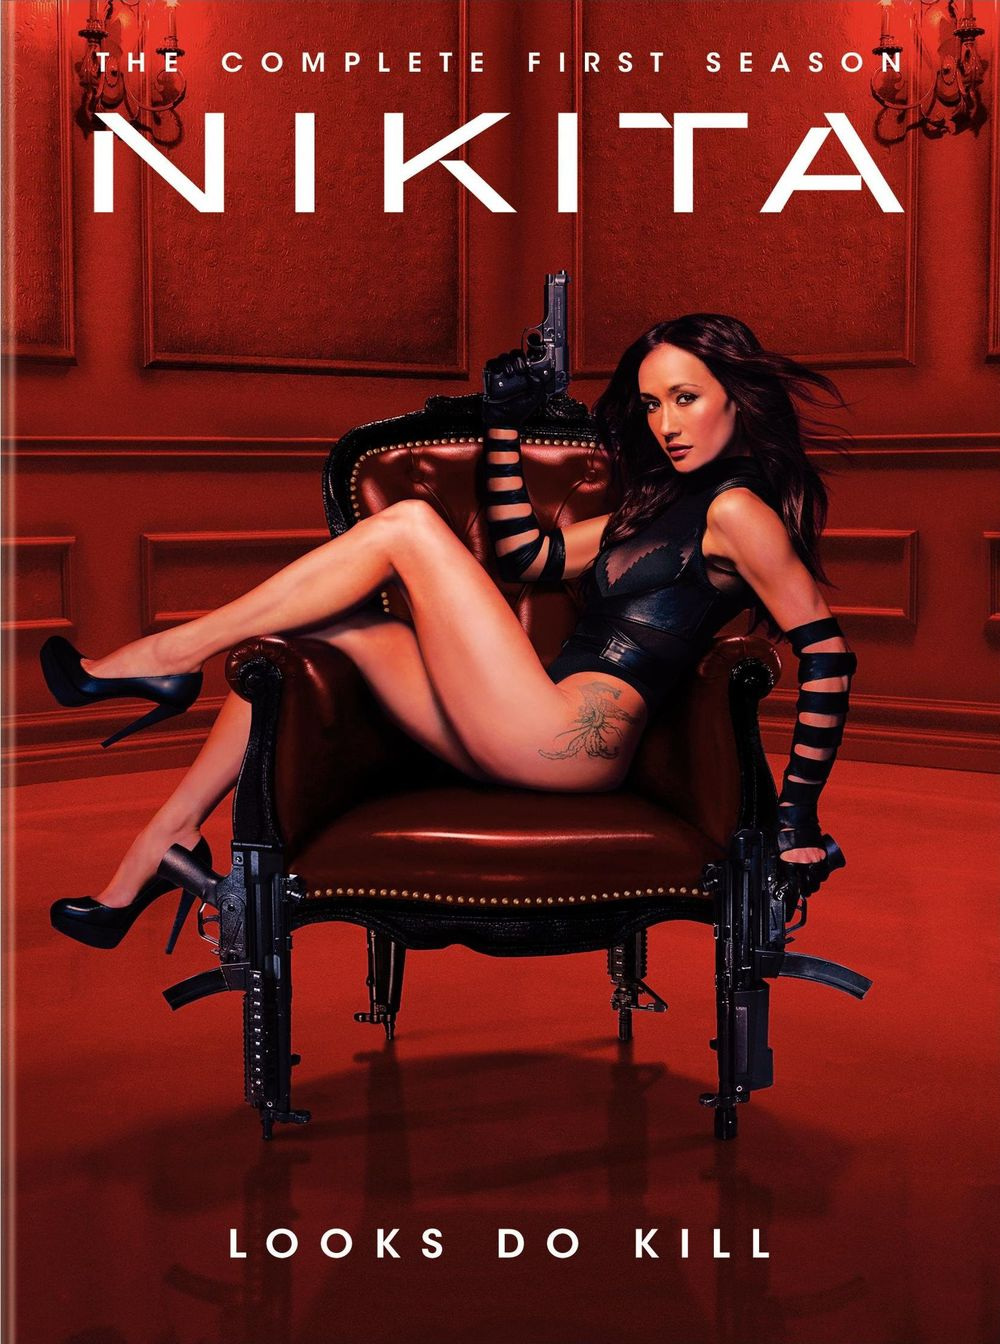 nikita-the-complete-first-season-dvd-cover-02.jpg